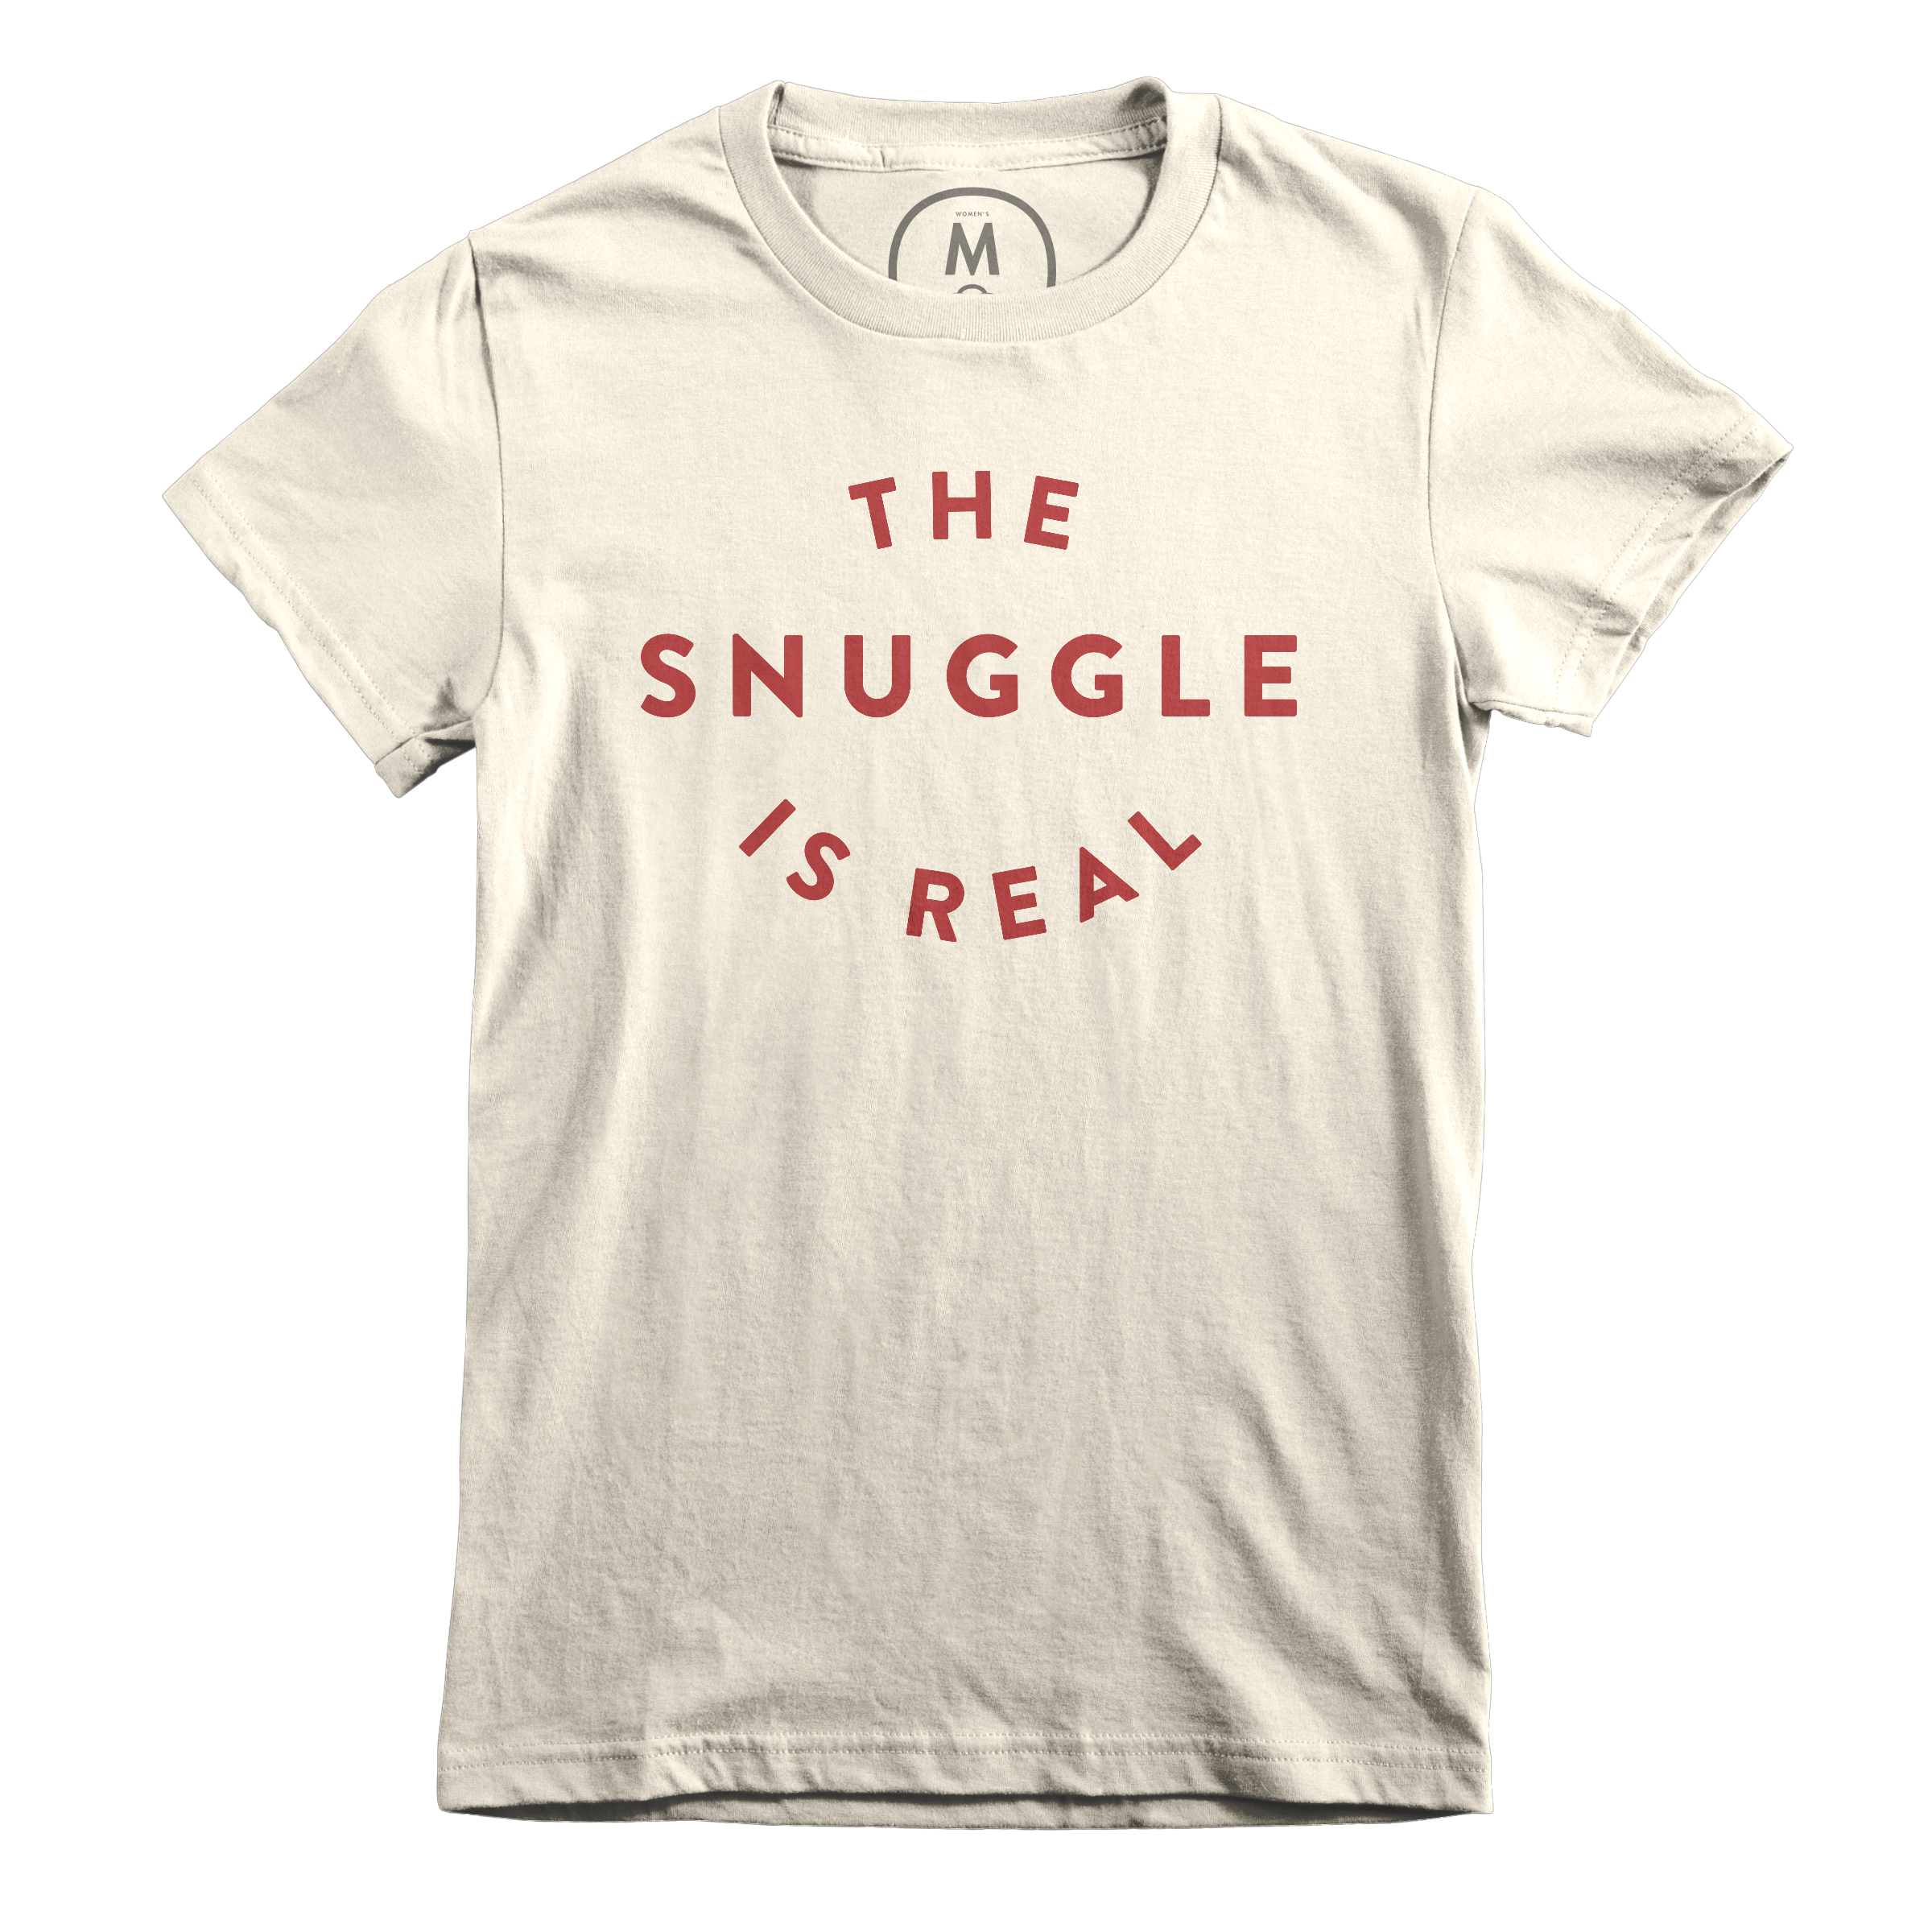 The Snuggle is Real Ivory (Women's)